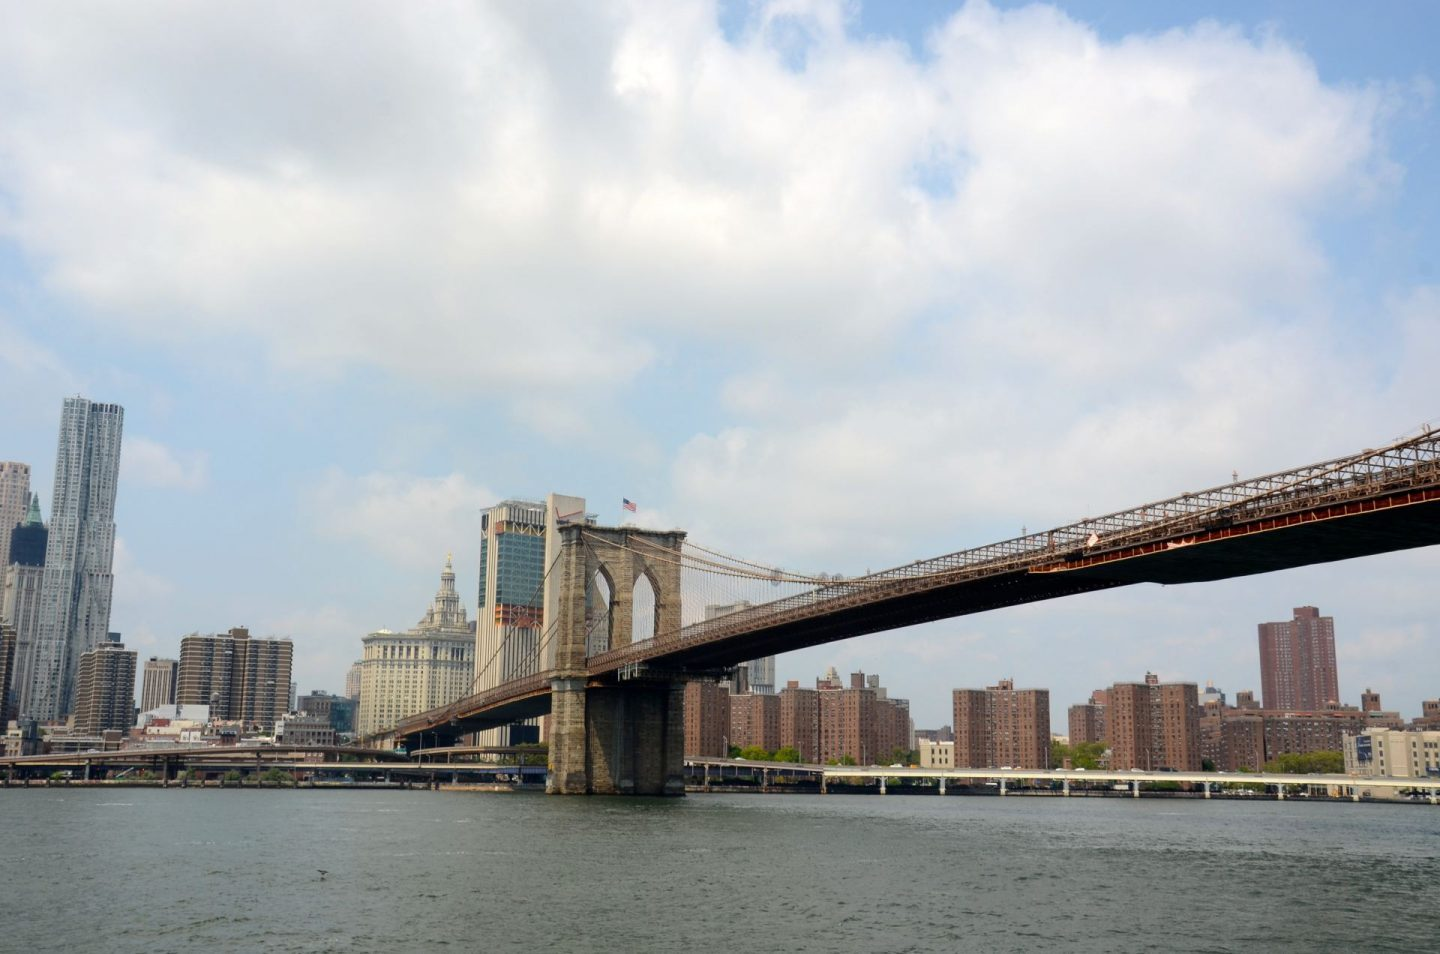 Looking at Brooklyn Bridge from the New York Water Taxi.